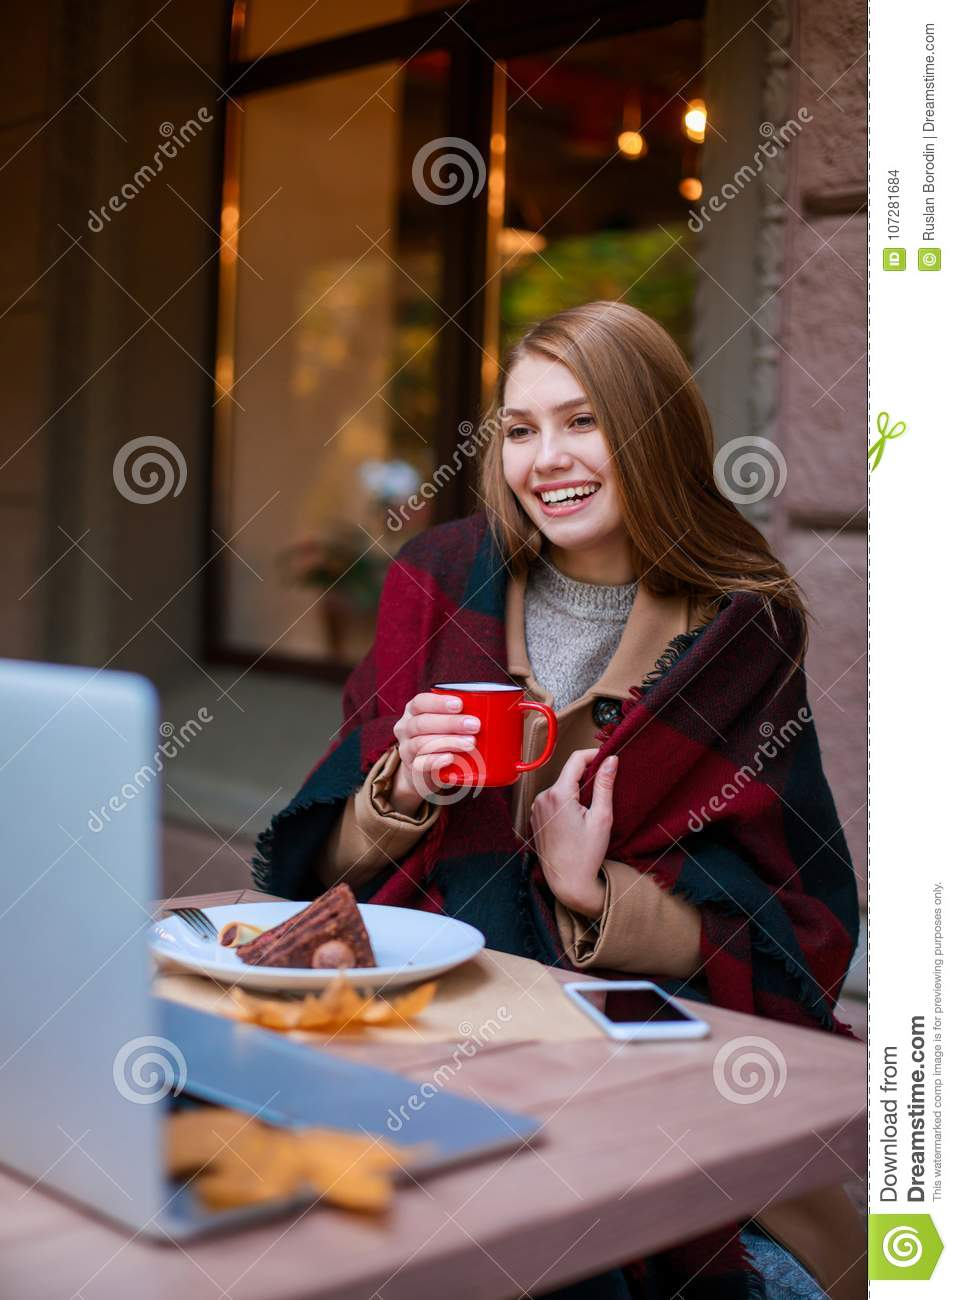 A happy girl, wrapped in a blanket, sits in a cafe talking to someone on a laptop, eating a dessert and drinking from a